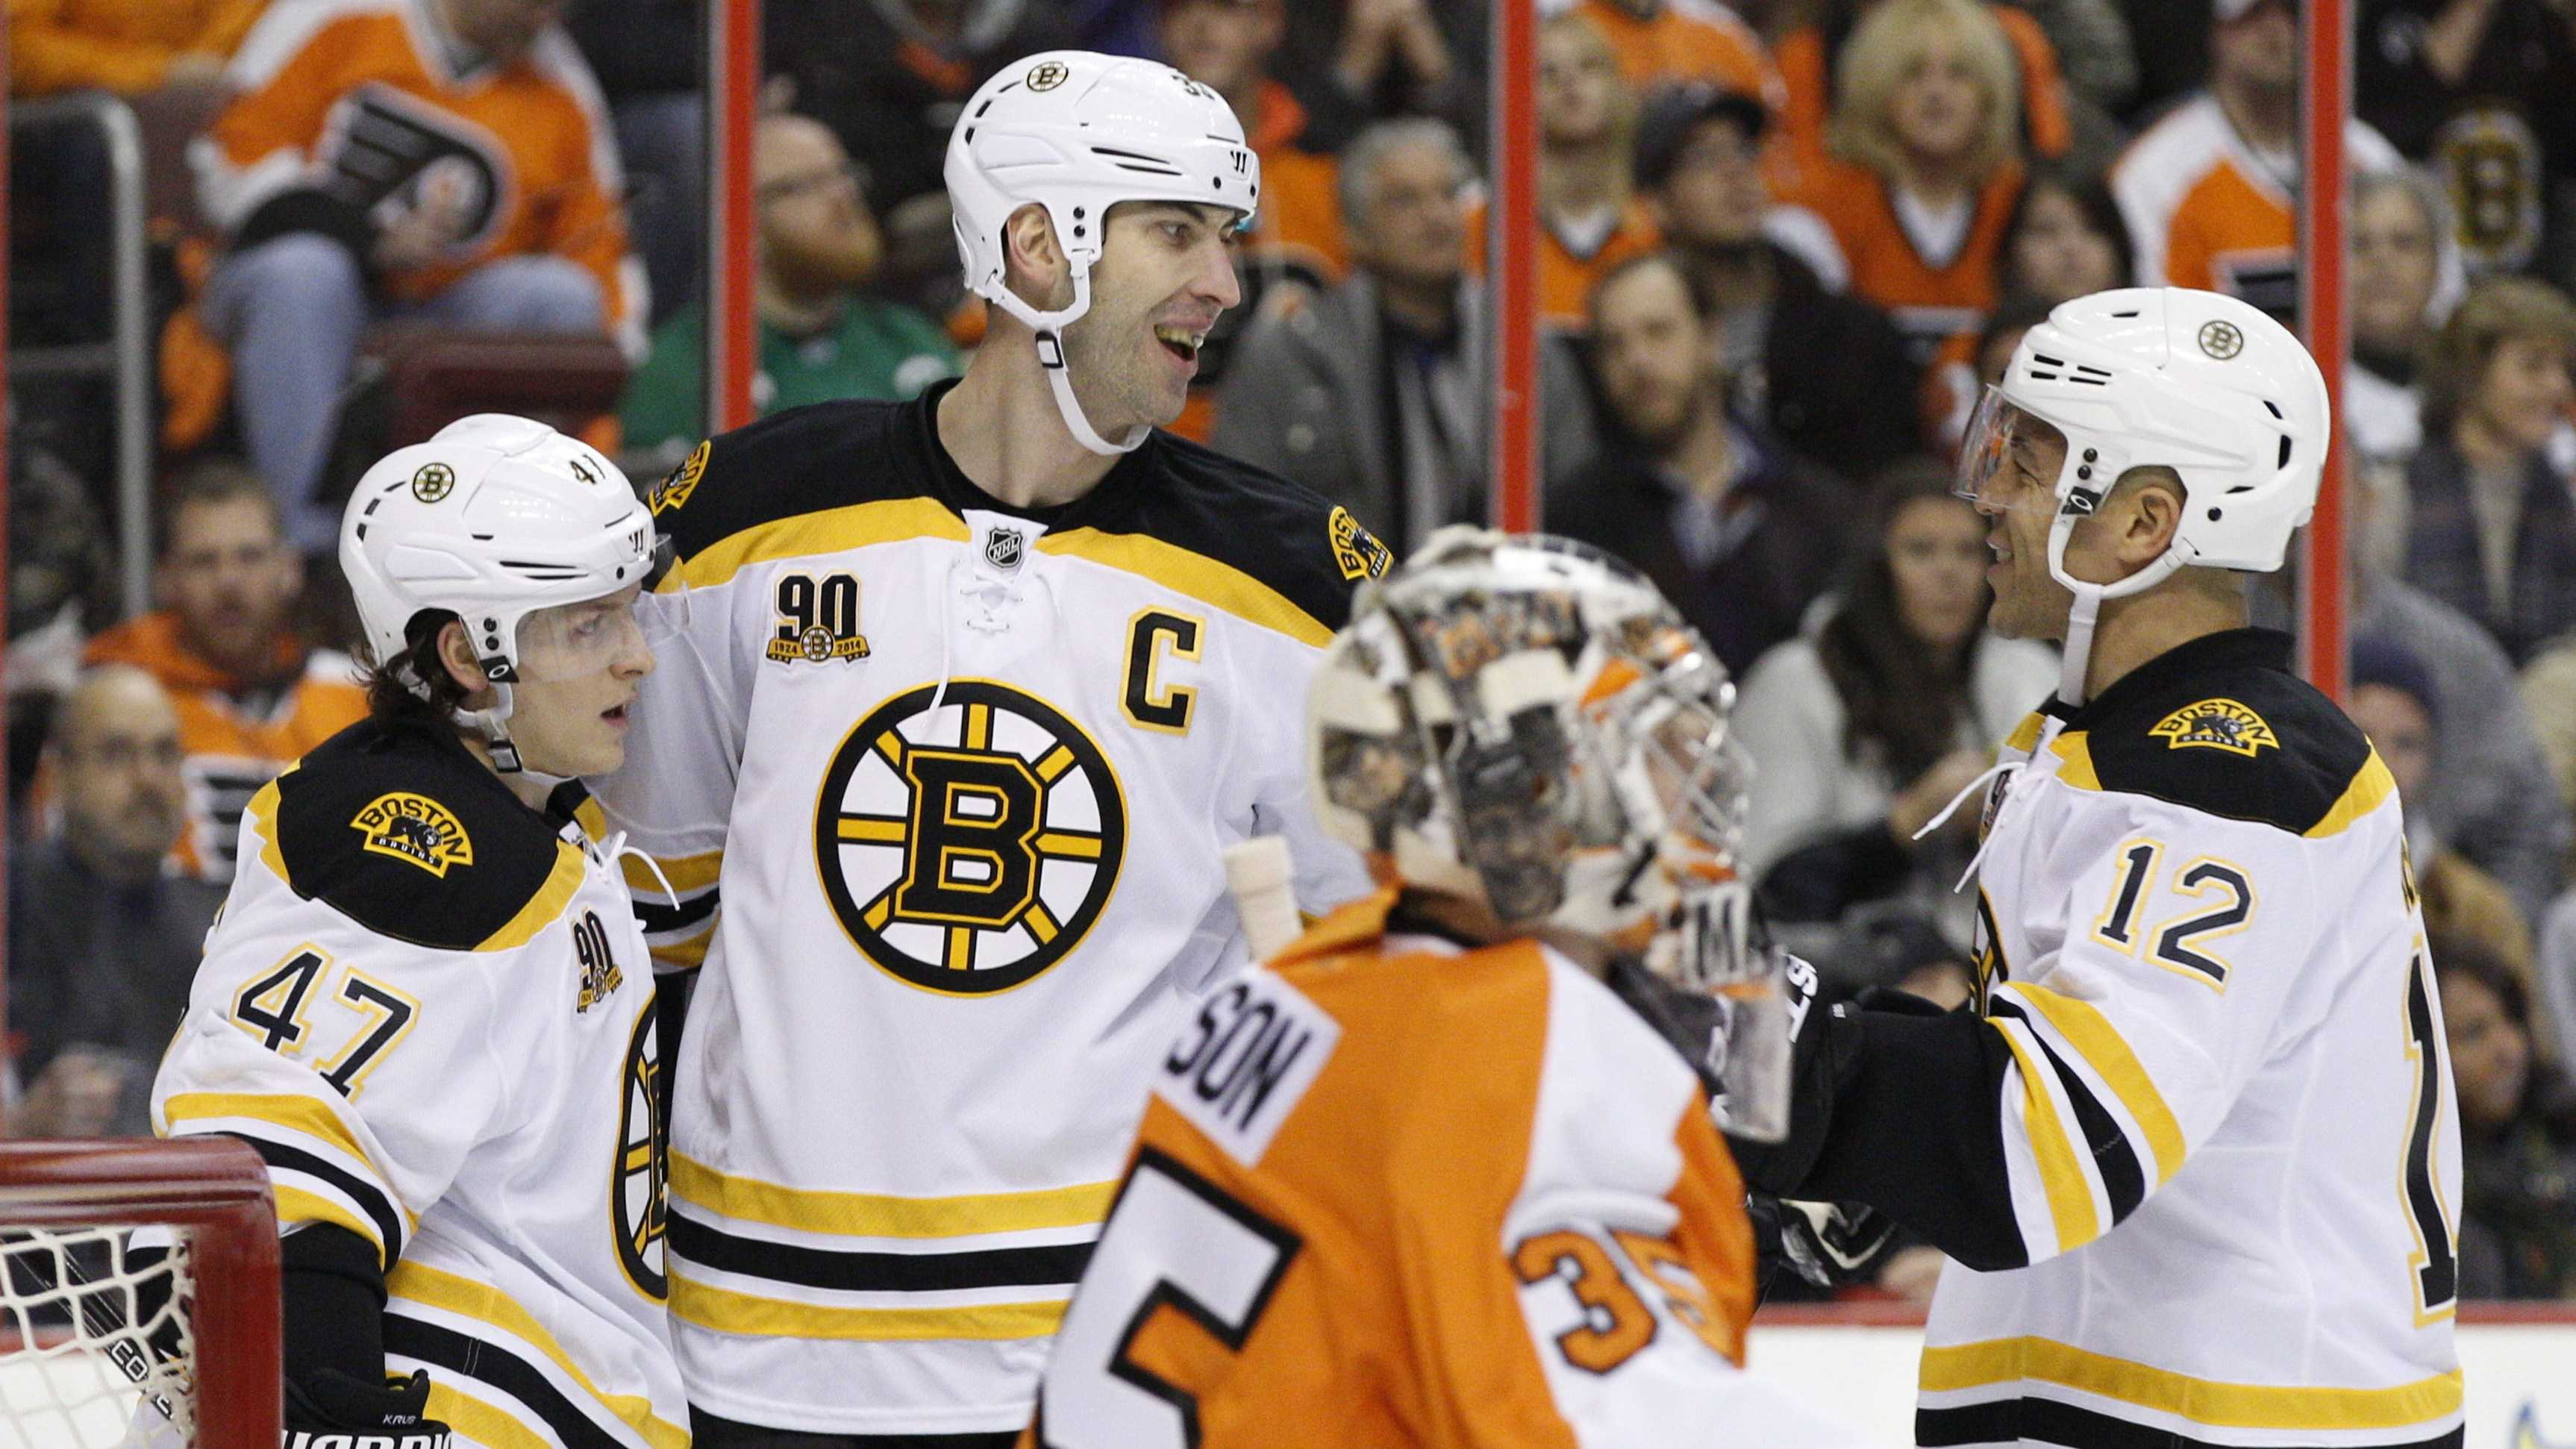 Boston Bruins' Zdeno Chara, top center, of Slovakia, celebrates his power play goal with Torey Krug, left, and Jarome Iginla, right, as Philadelphia Flyers' Steve Mason looks on during the first period of an NHL hockey game, Saturday, Jan. 25, 2014, in Philadelphia. (AP Photo/Chris Szagola)